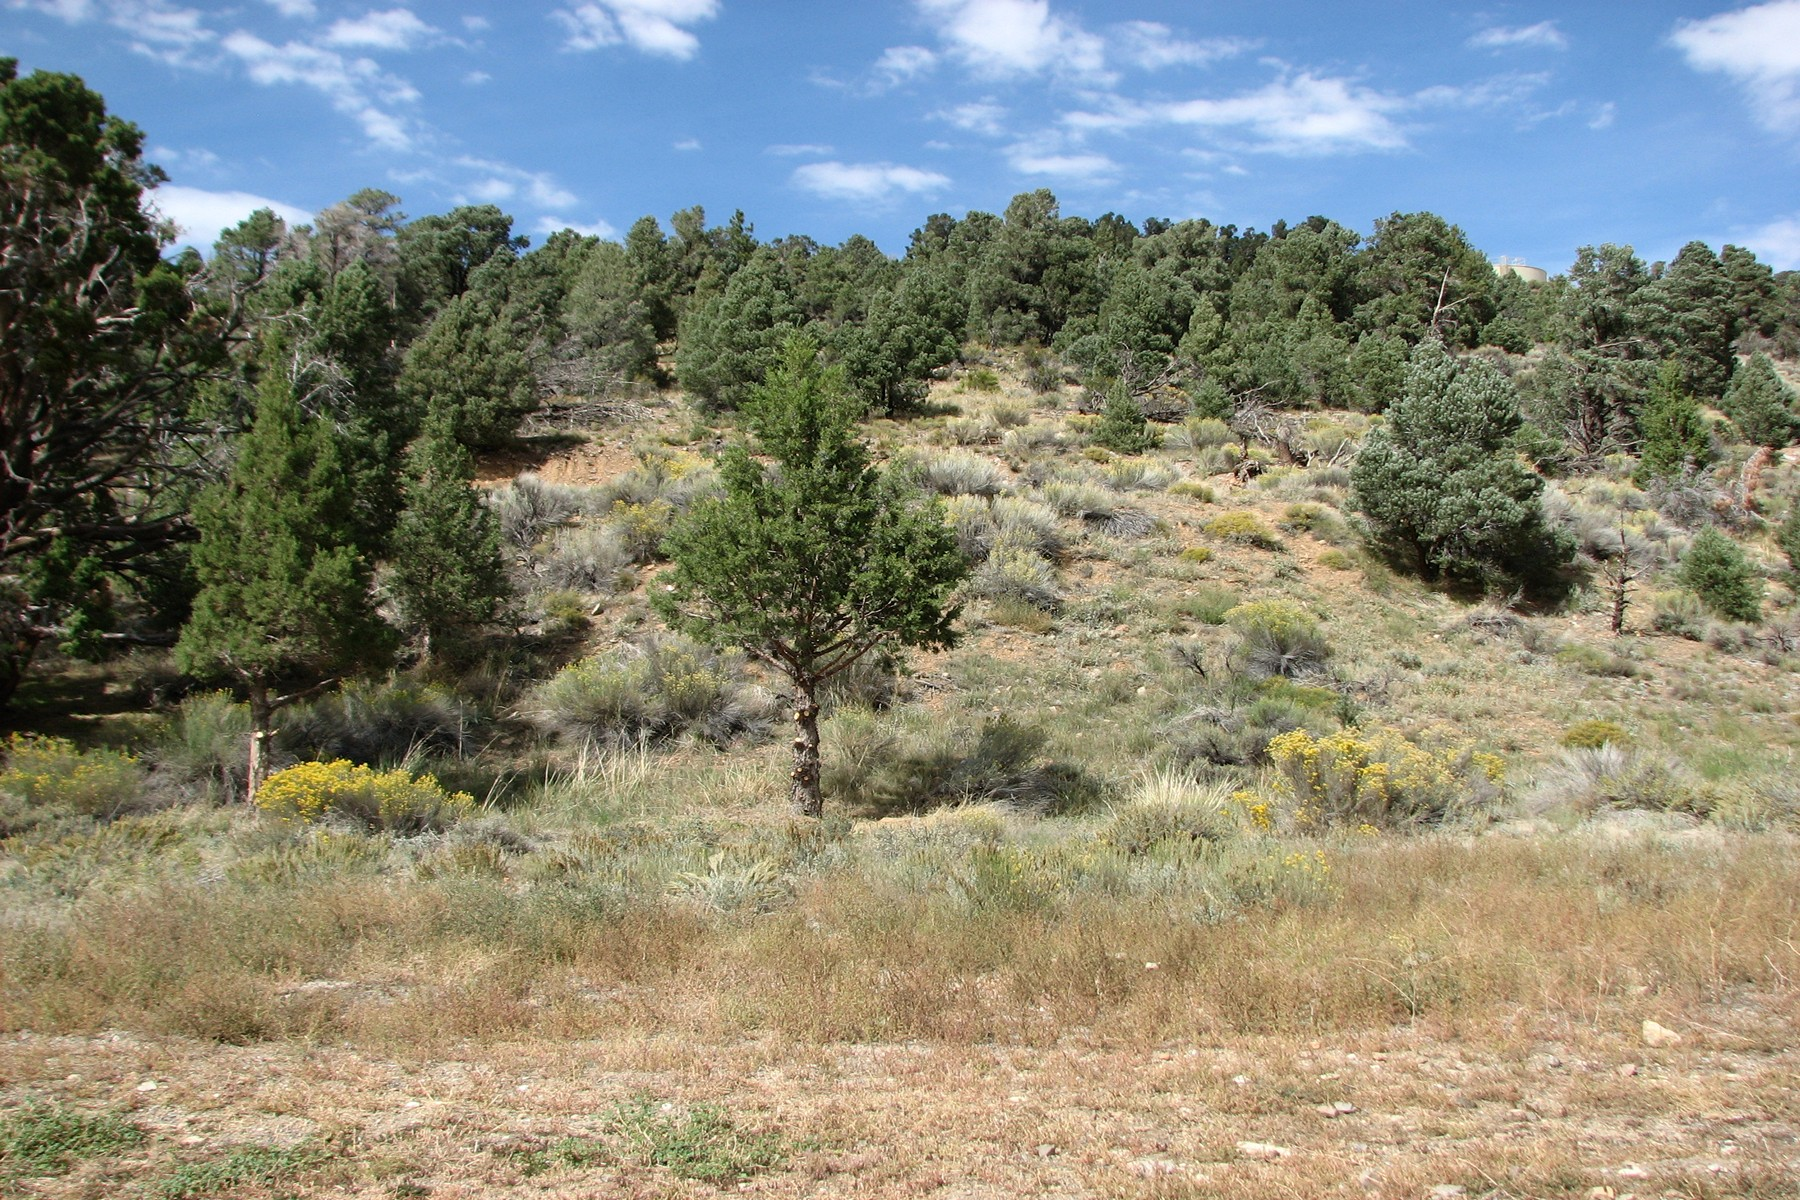 Land for Sale at 46850 Lakewood Drive, Big Bear City, California, 92314 46850 Lakewood Drive Big Bear City, California 92314 United States